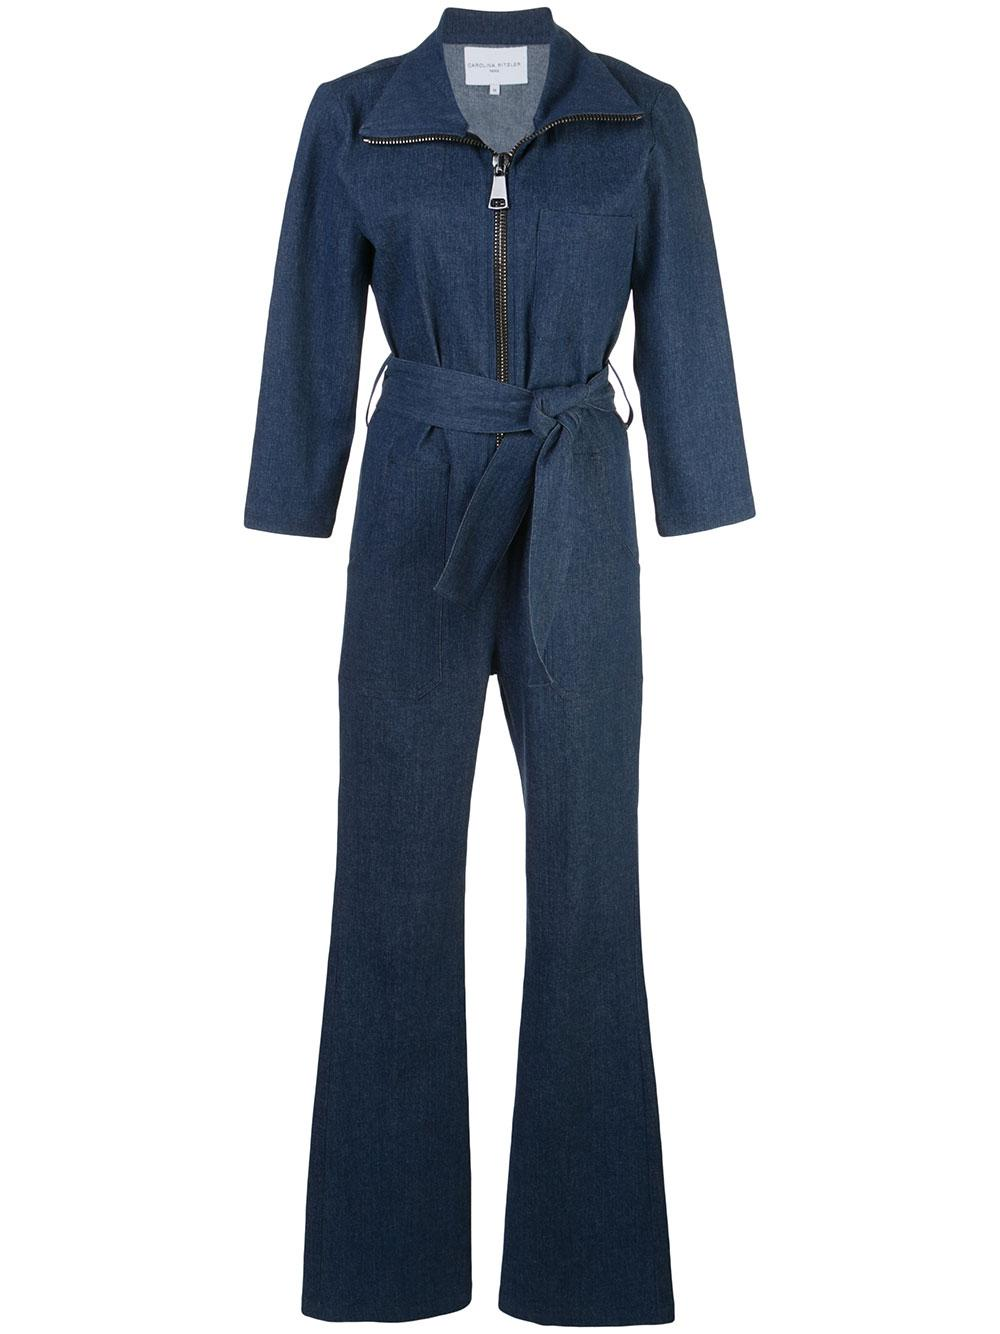 Emma Peel Denim Long Sleeve Zip-Up Jumpsuit